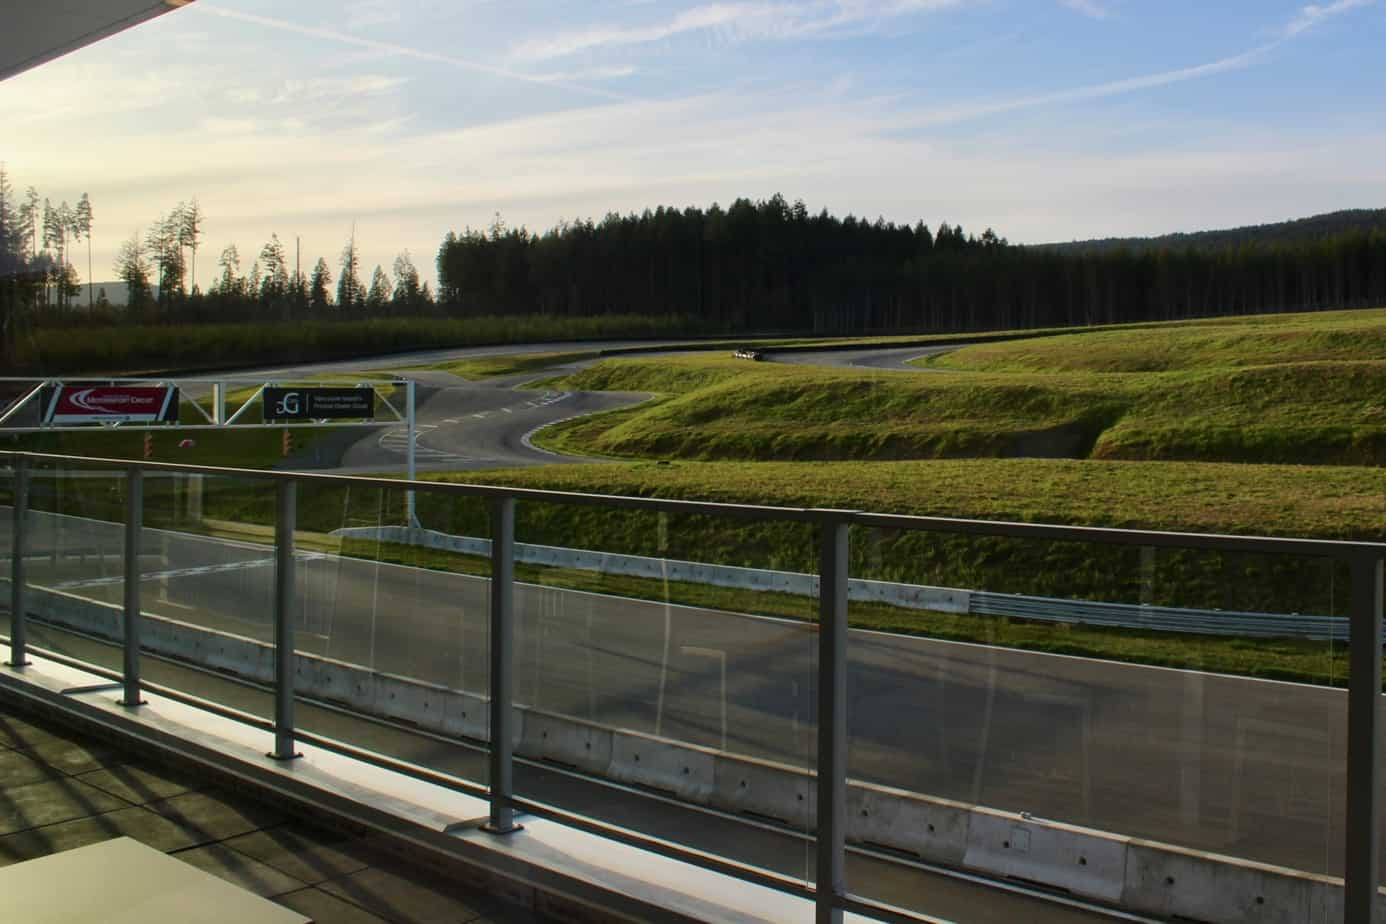 The Vancouver Island Motorsport Circuit sits about a 10 minute drive from Duncan B.C., near the neighbourhood of Sahtlam. Jacqueline Ronson/The Discourse